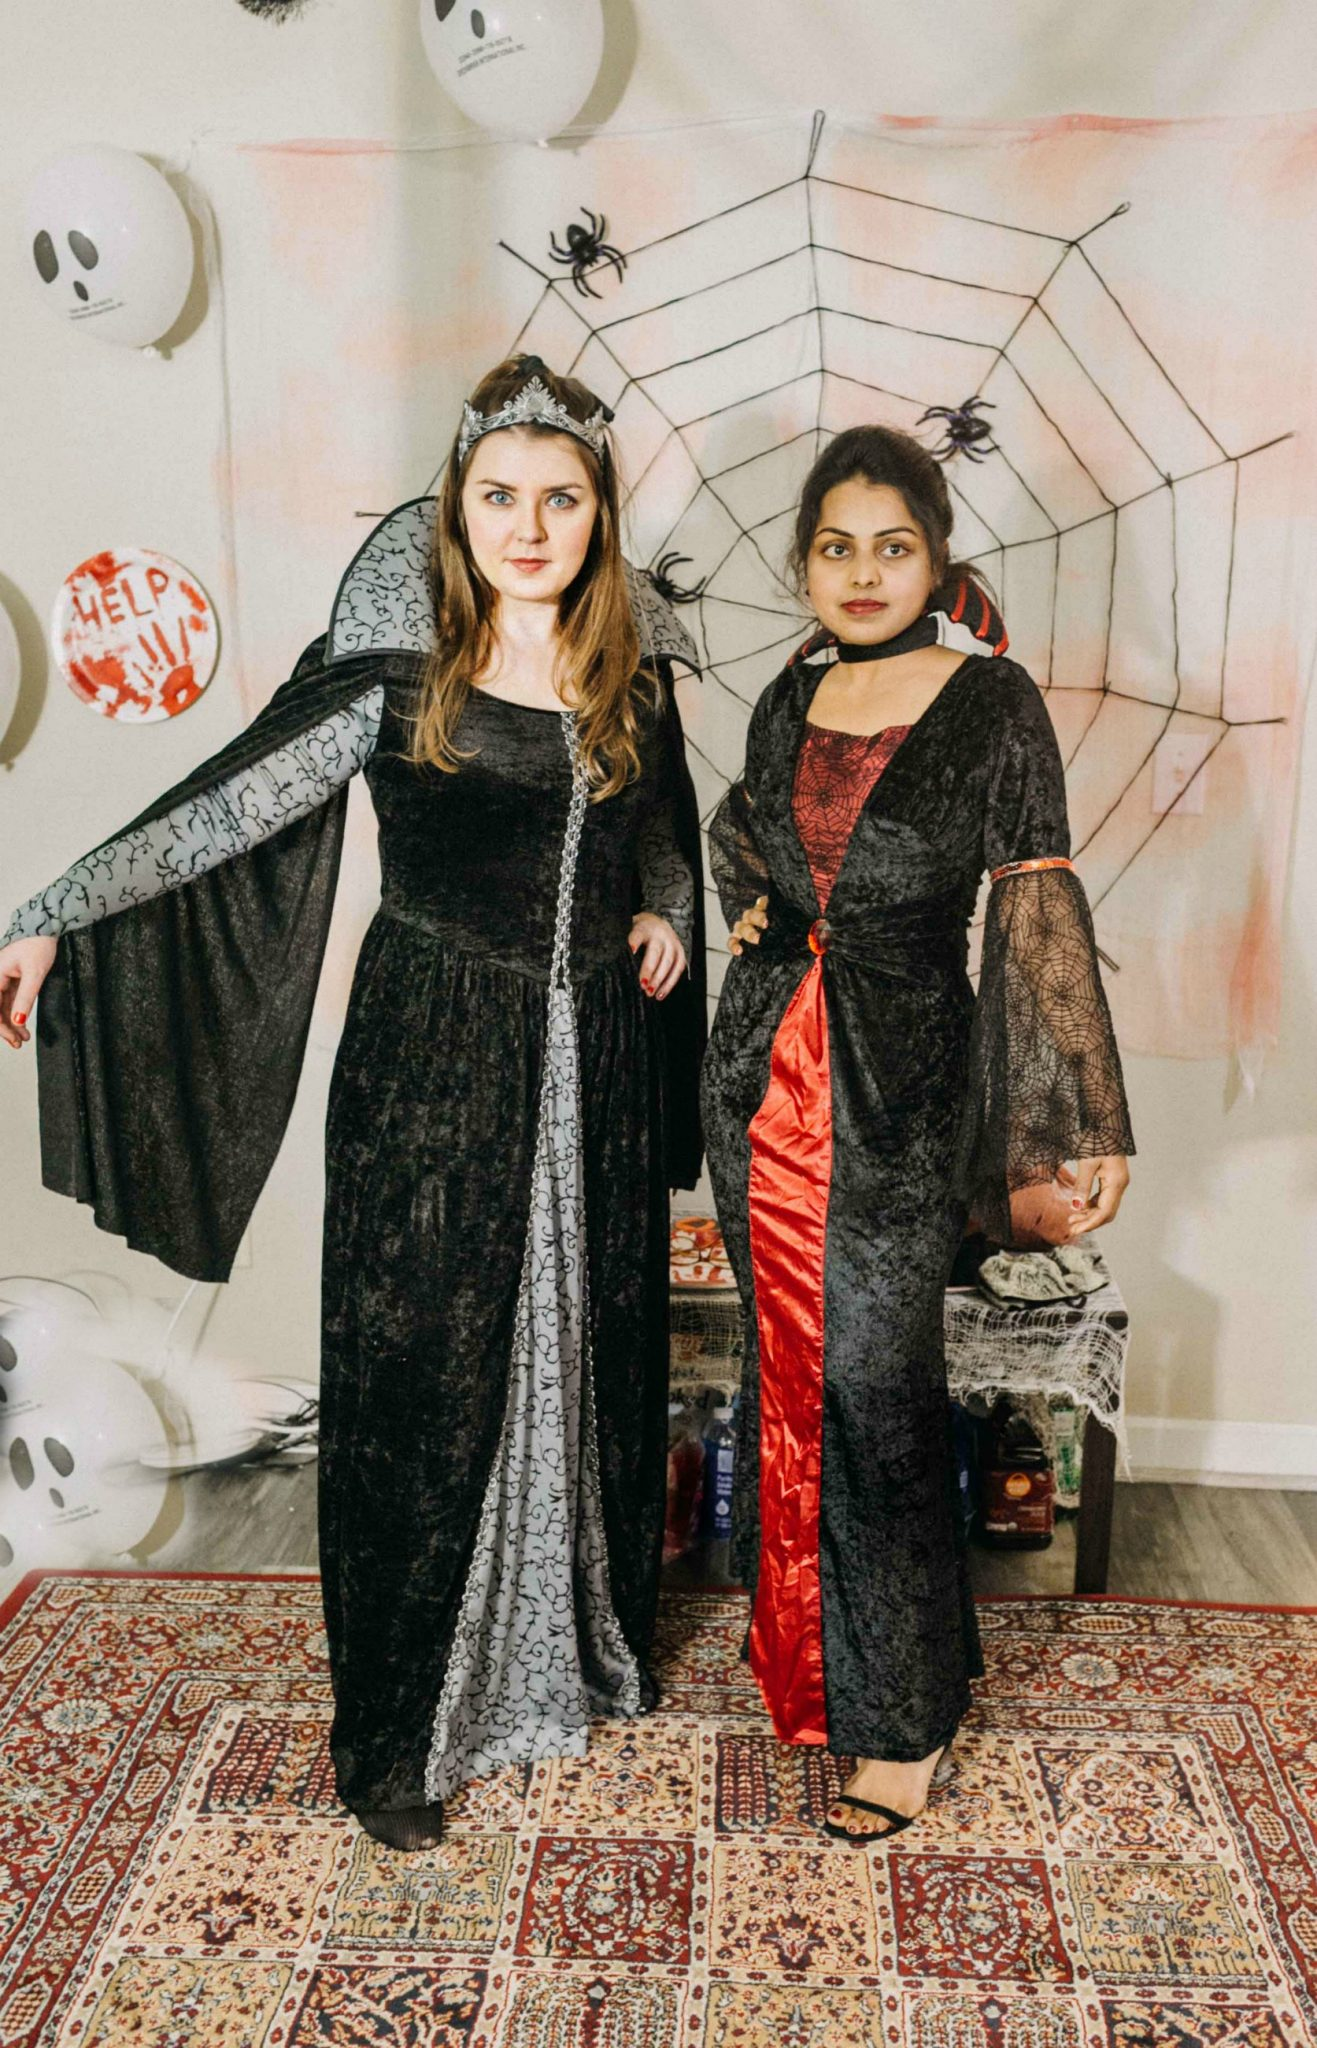 Halloween Bachelorette Evil queen costume 15 Scary Fun Ideas for your Halloween Bachelorette Party- Costumes, Decorations and Games featured by top US life and style blog, Dreaming Loud